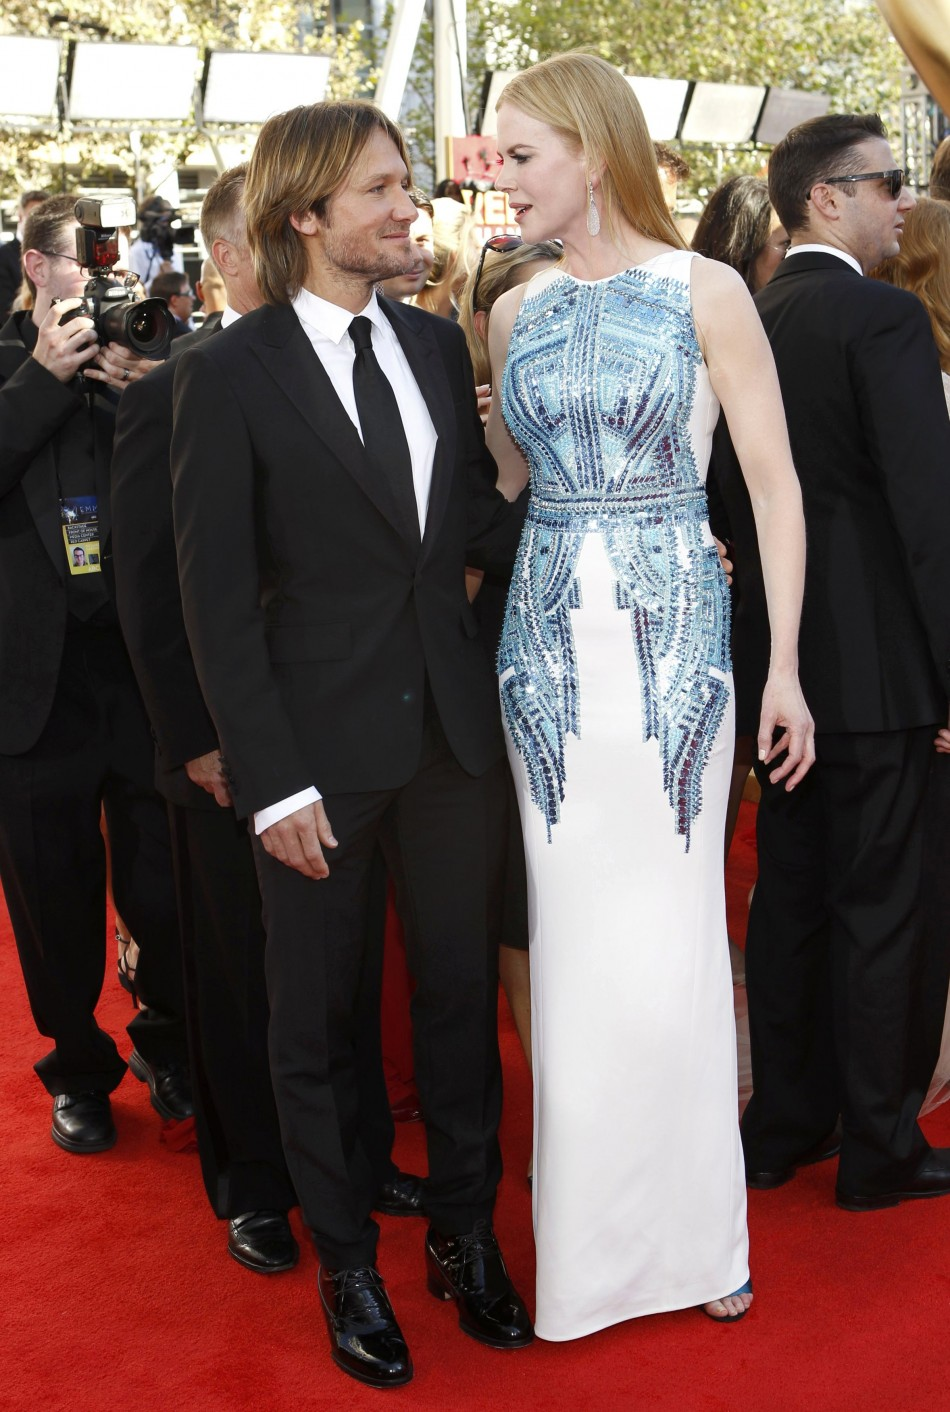 Country singer Keith Urban and his wife, actress Nicole Kidman, arrive at the 64th Primetime Emmy Awards in Los Angeles